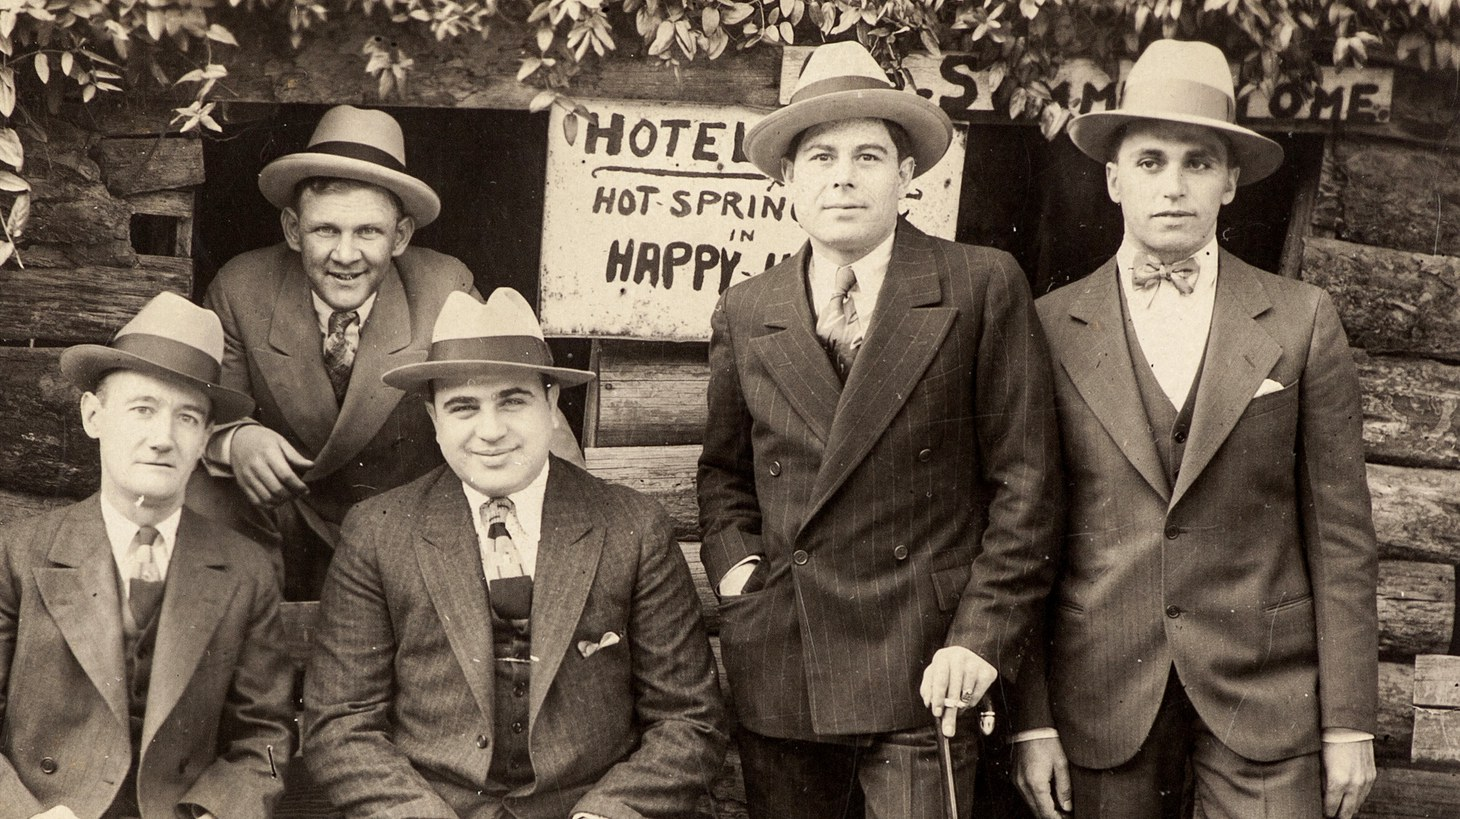 A vintage silver print photo shows Al Capone with associates at Hot Springs, Arkansas in an undated photo.